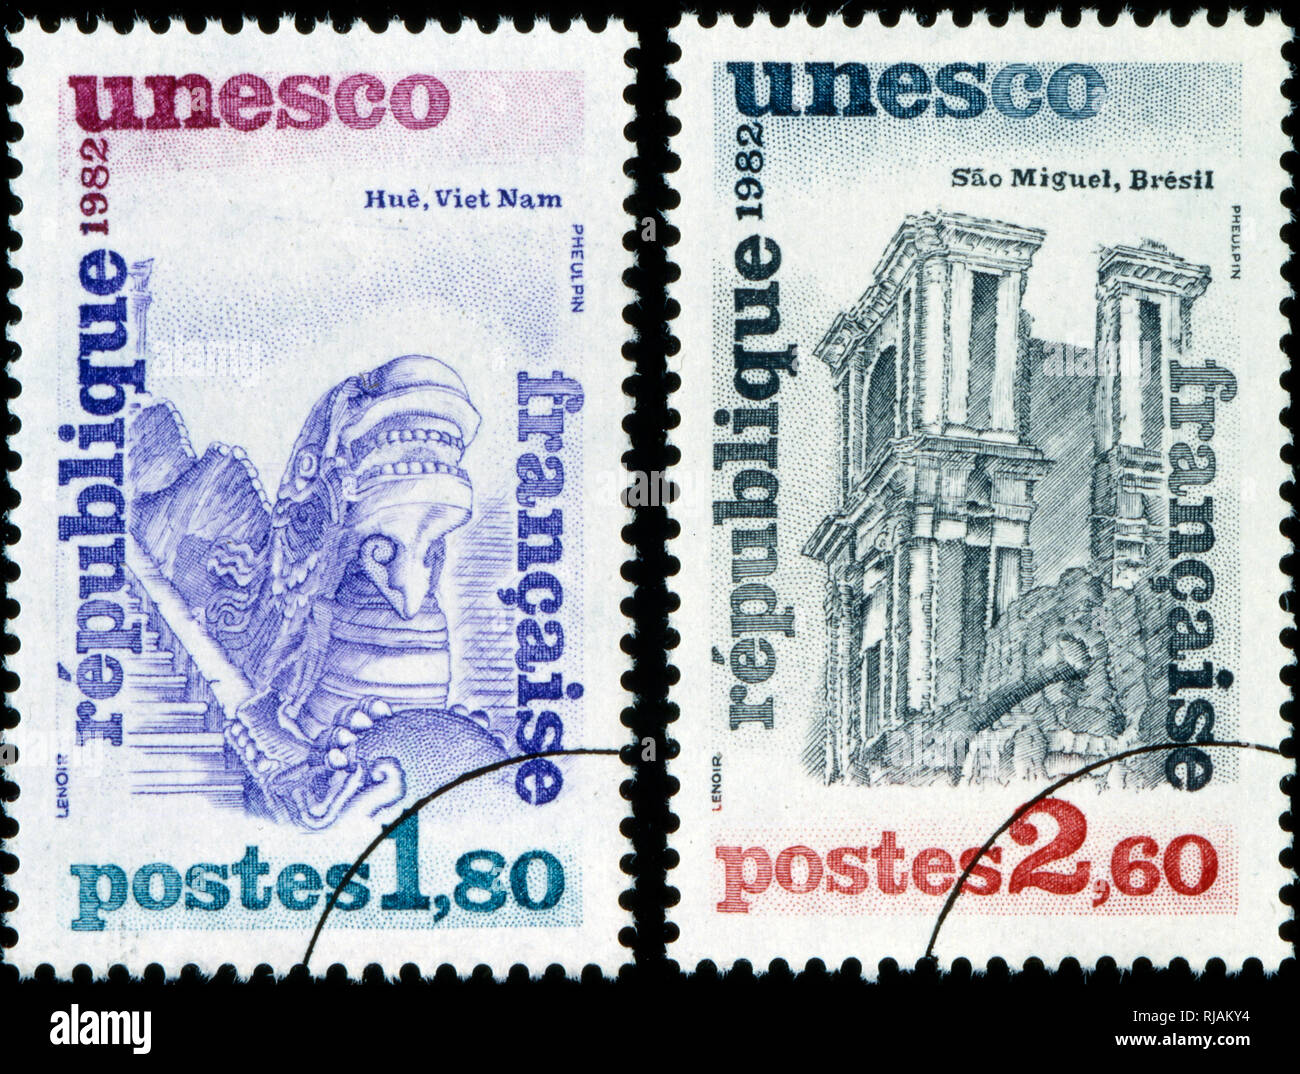 French postage stamp commemorating the designation of Hue in Vietnam and Sao Miguel in Brazil as UNESCO World Heritage Sites 1982 - Stock Image